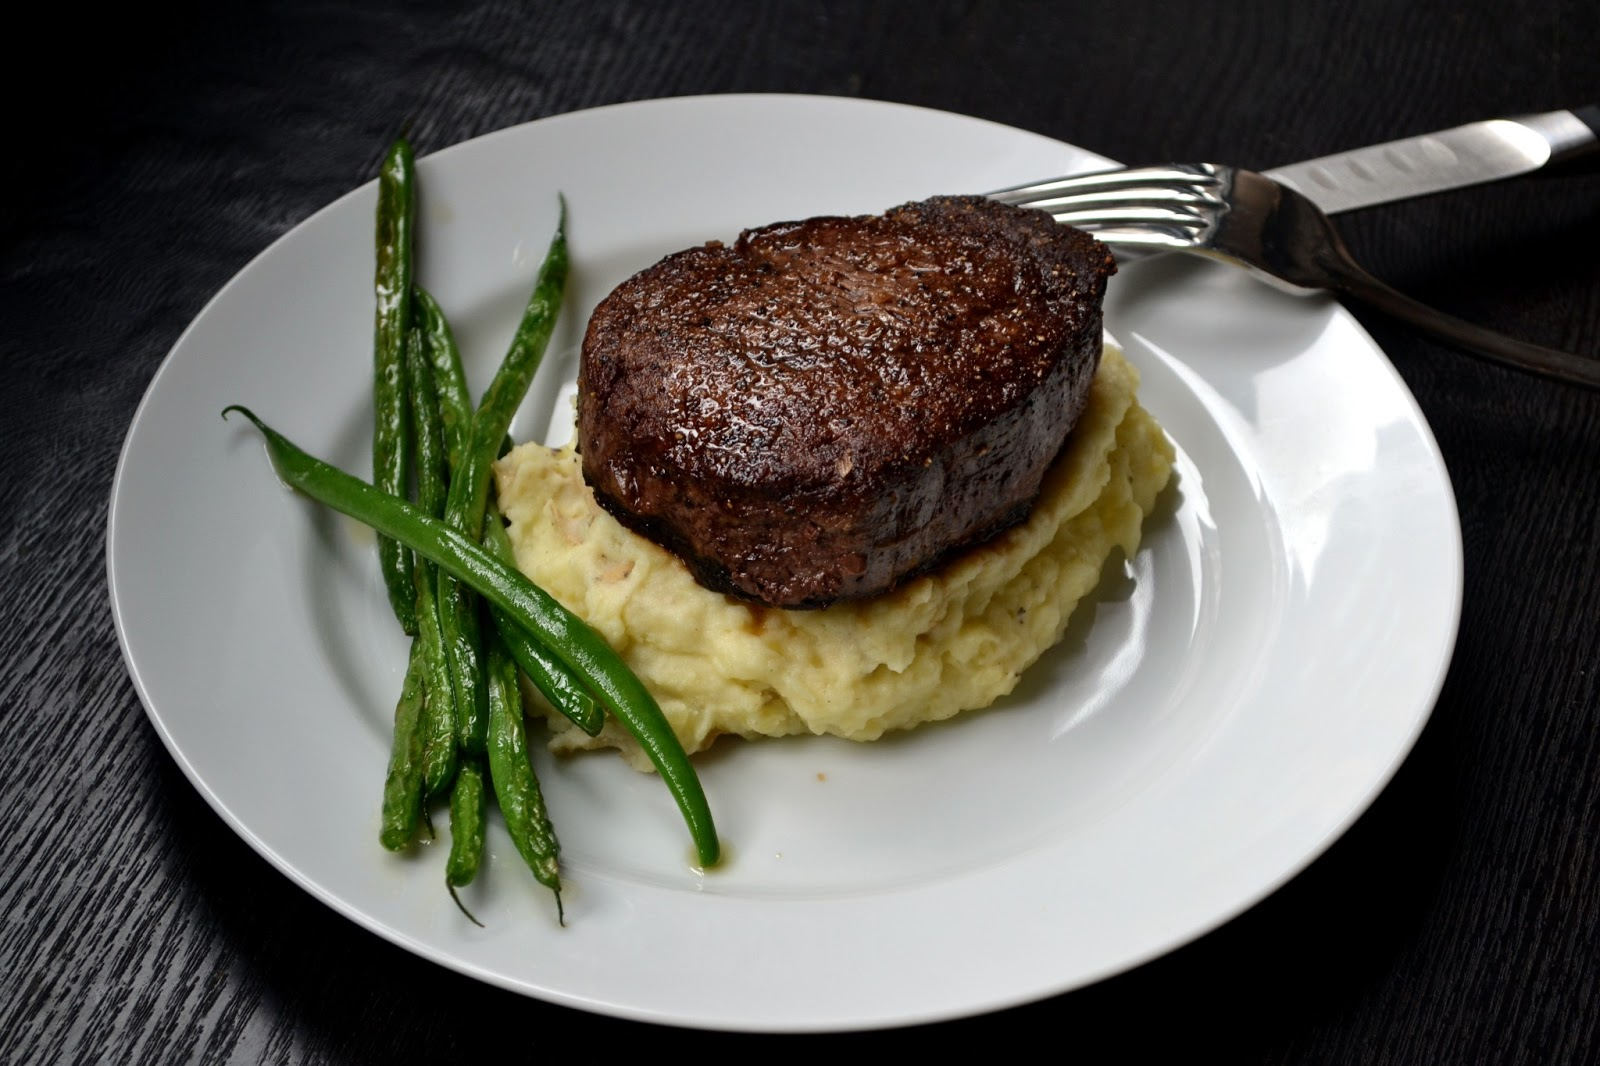 Hardly Housewives: How to Make the Perfect Filet Mignon